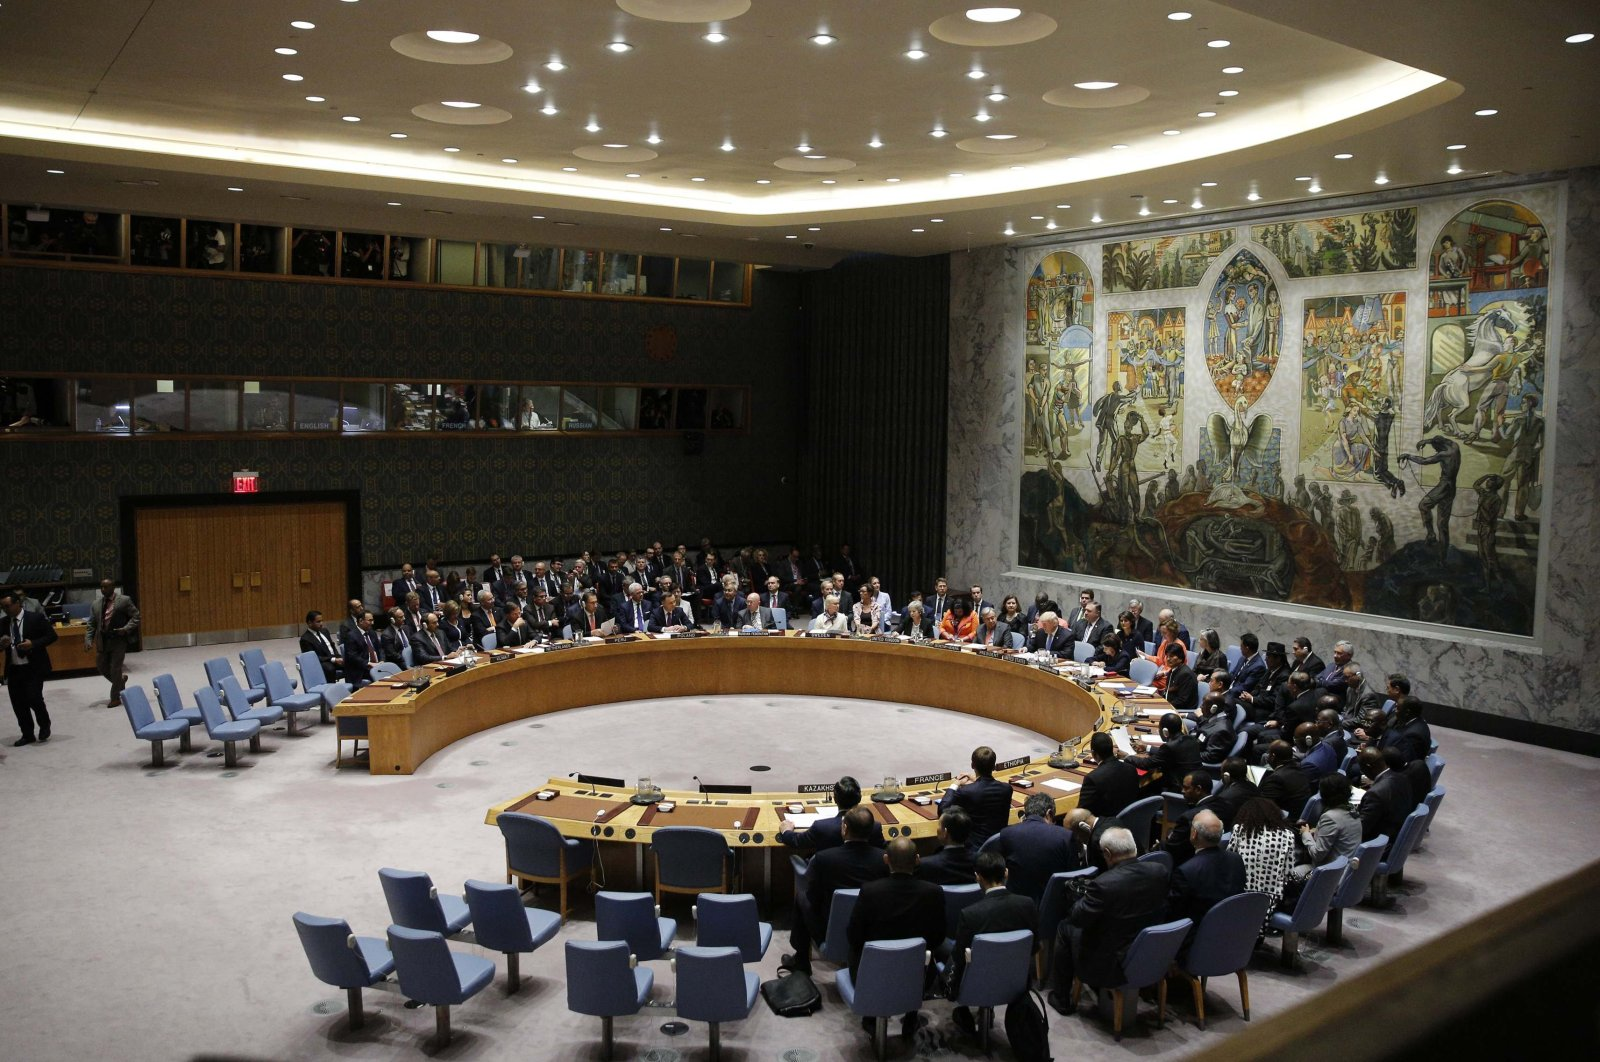 U.S. President Donald Trump chairs a meeting of the United Nations Security Council held during the 73rd sessions of the U.N. General Assembly, New York, Sept. 26, 2018. (Reuters Photo)